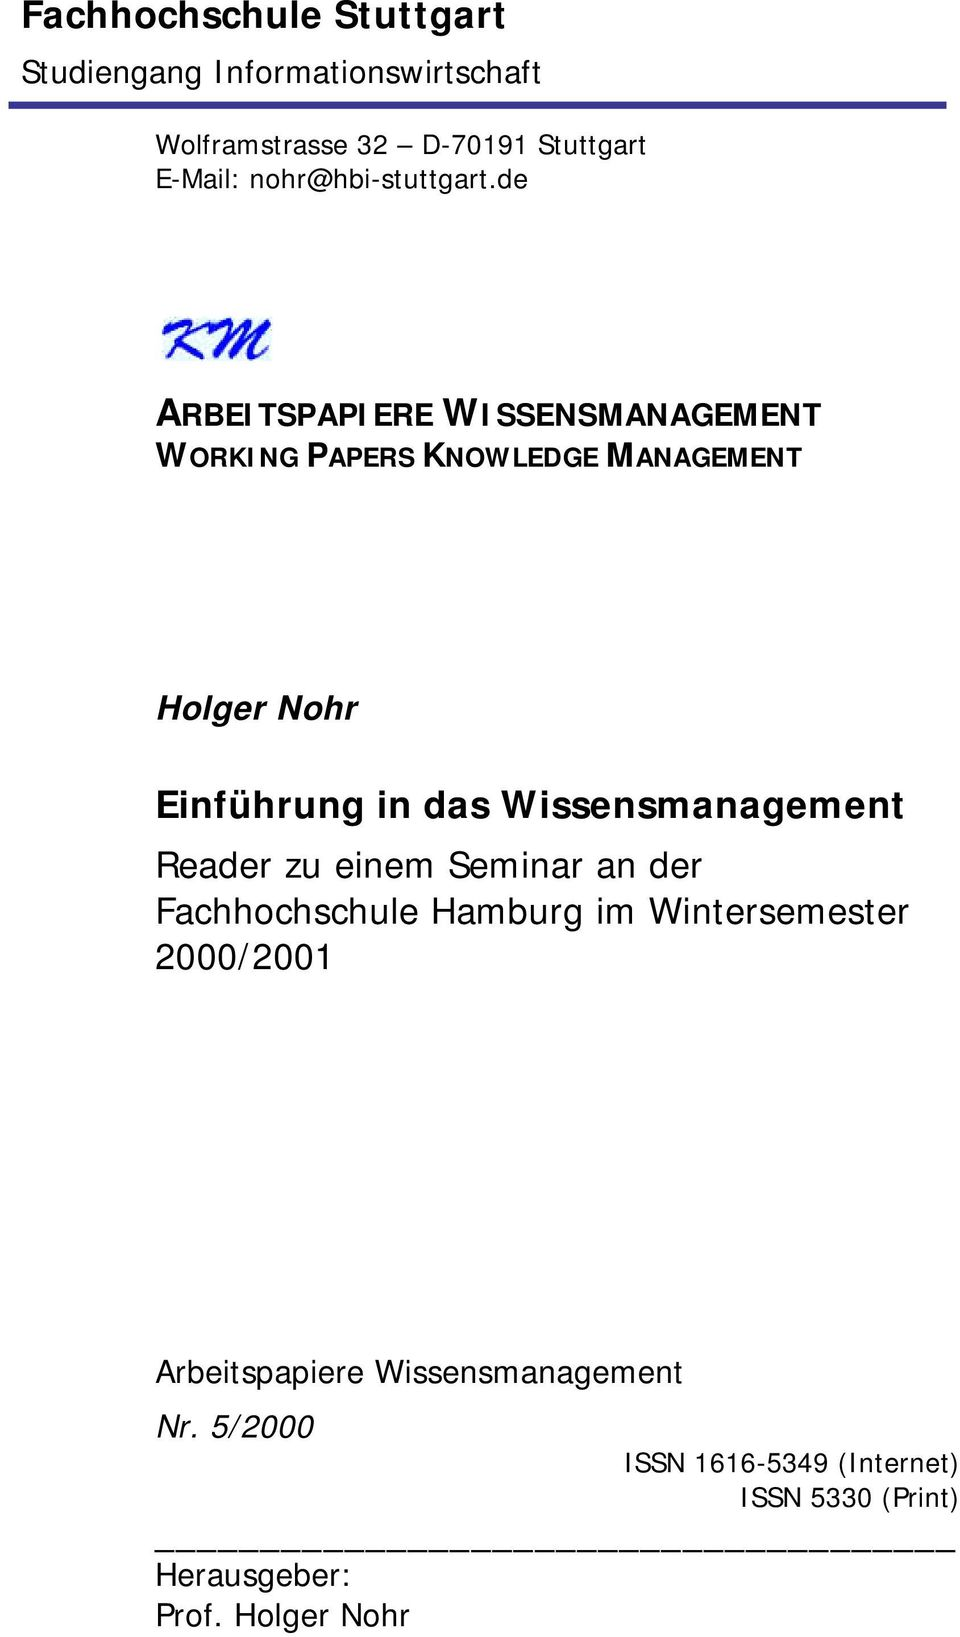 de ARBEITSPAPIERE WISSENSMANAGEMENT WORKING PAPERS KNOWLEDGE MANAGEMENT Holger Nohr Einführung in das